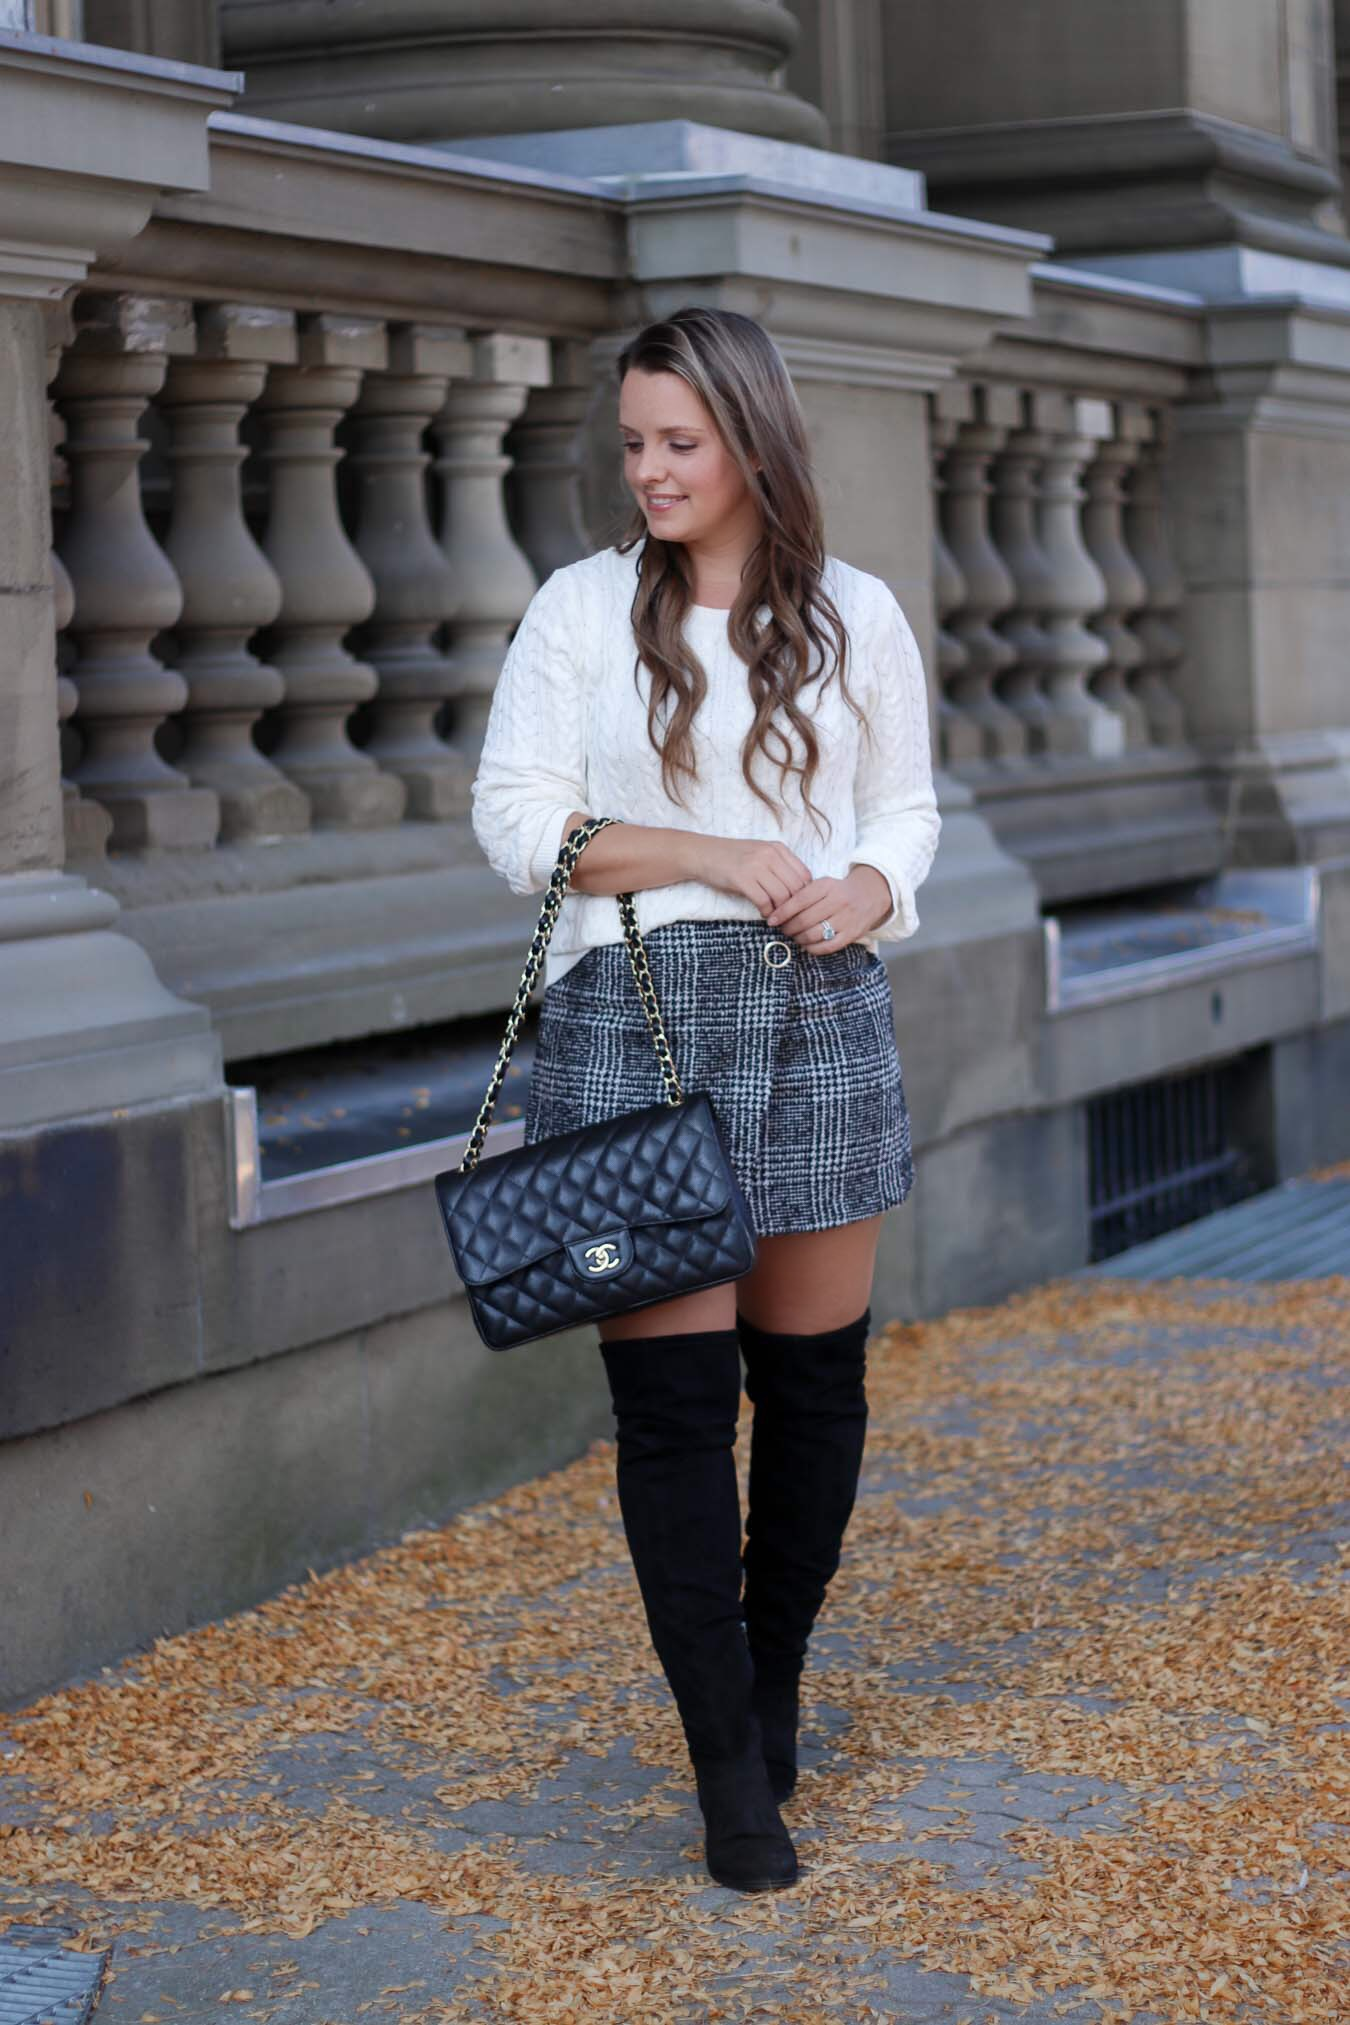 Black and White Outfits Are Chic!